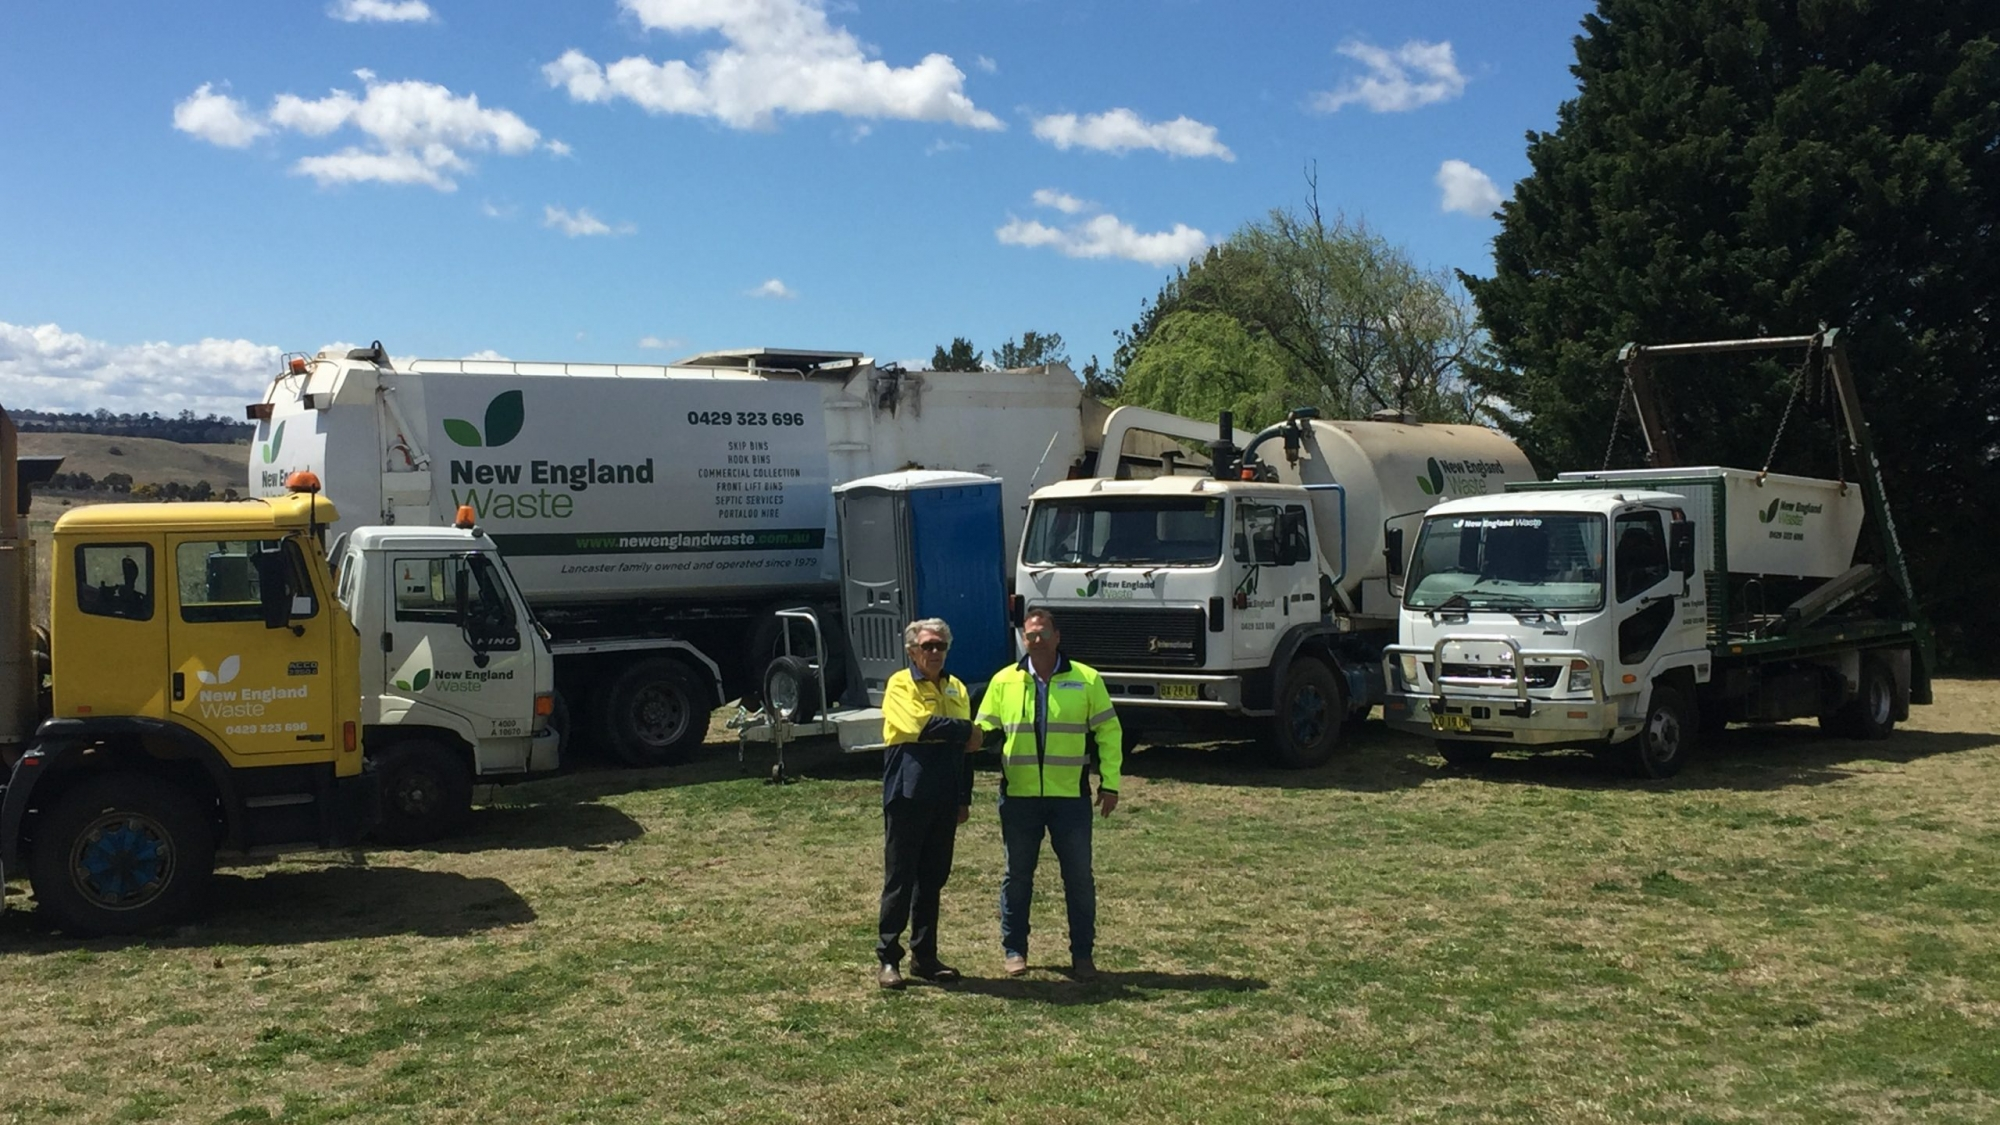 Malcolm and Howard Lancaster from New England Waste with their fleet of waste removal vehicles